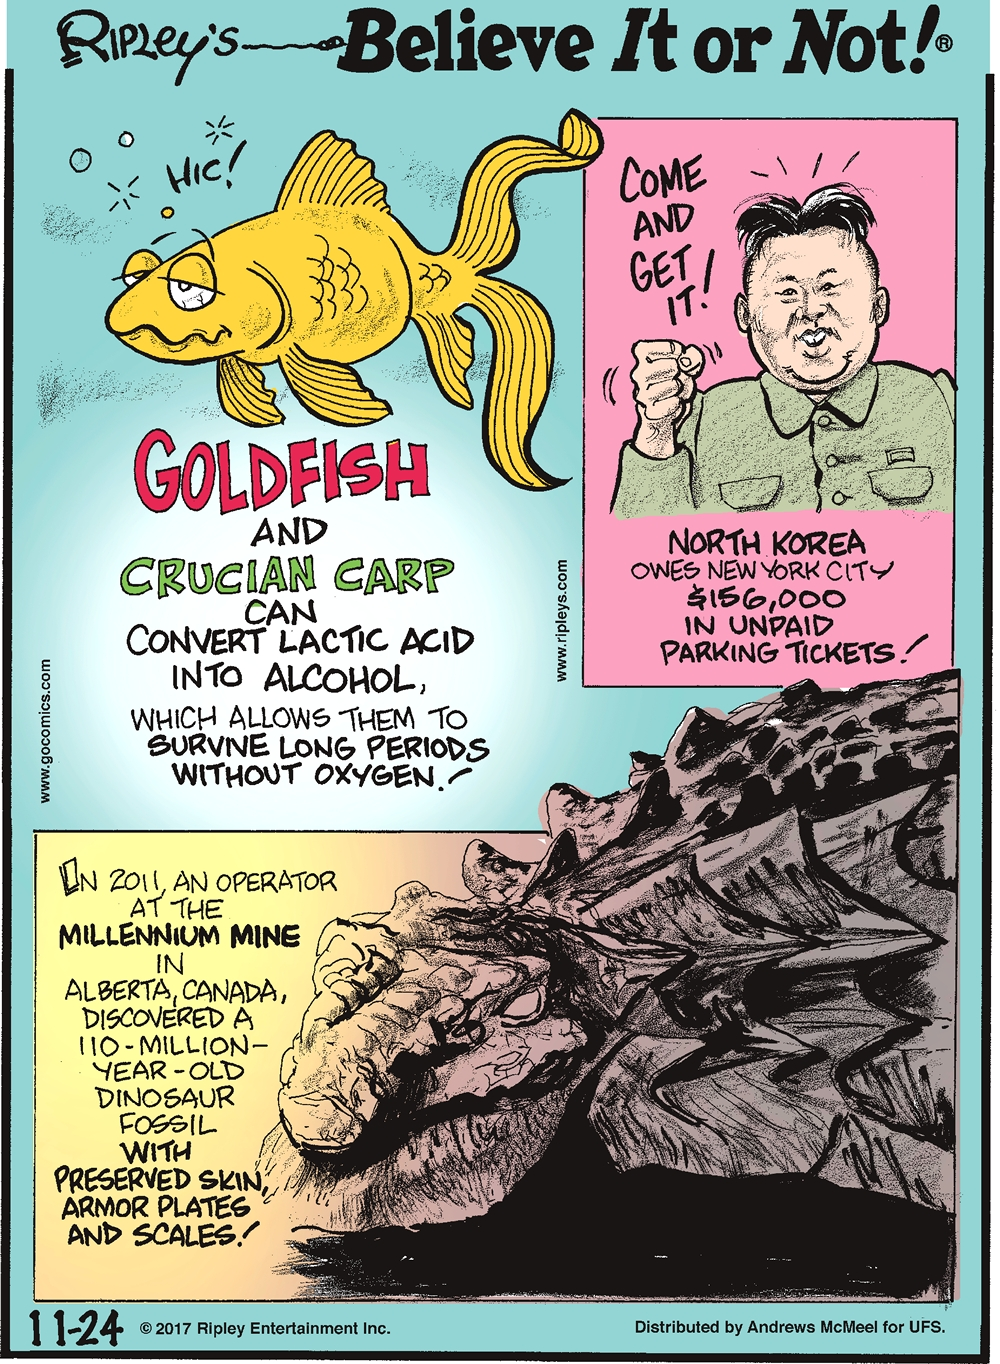 Goldfish and crucian carp can convert lactic acid into alcohol, which allows them to survive long periods without oxygen!-------------------- North Korea owes New York City $156,000 in unpaid parking tickets!-------------------- In 2011, an operator at the Millennium Mine in Alberta, Canada, discovered a 110-million-year-old dinosaur fossil with preserved skin, armor plates and scales!